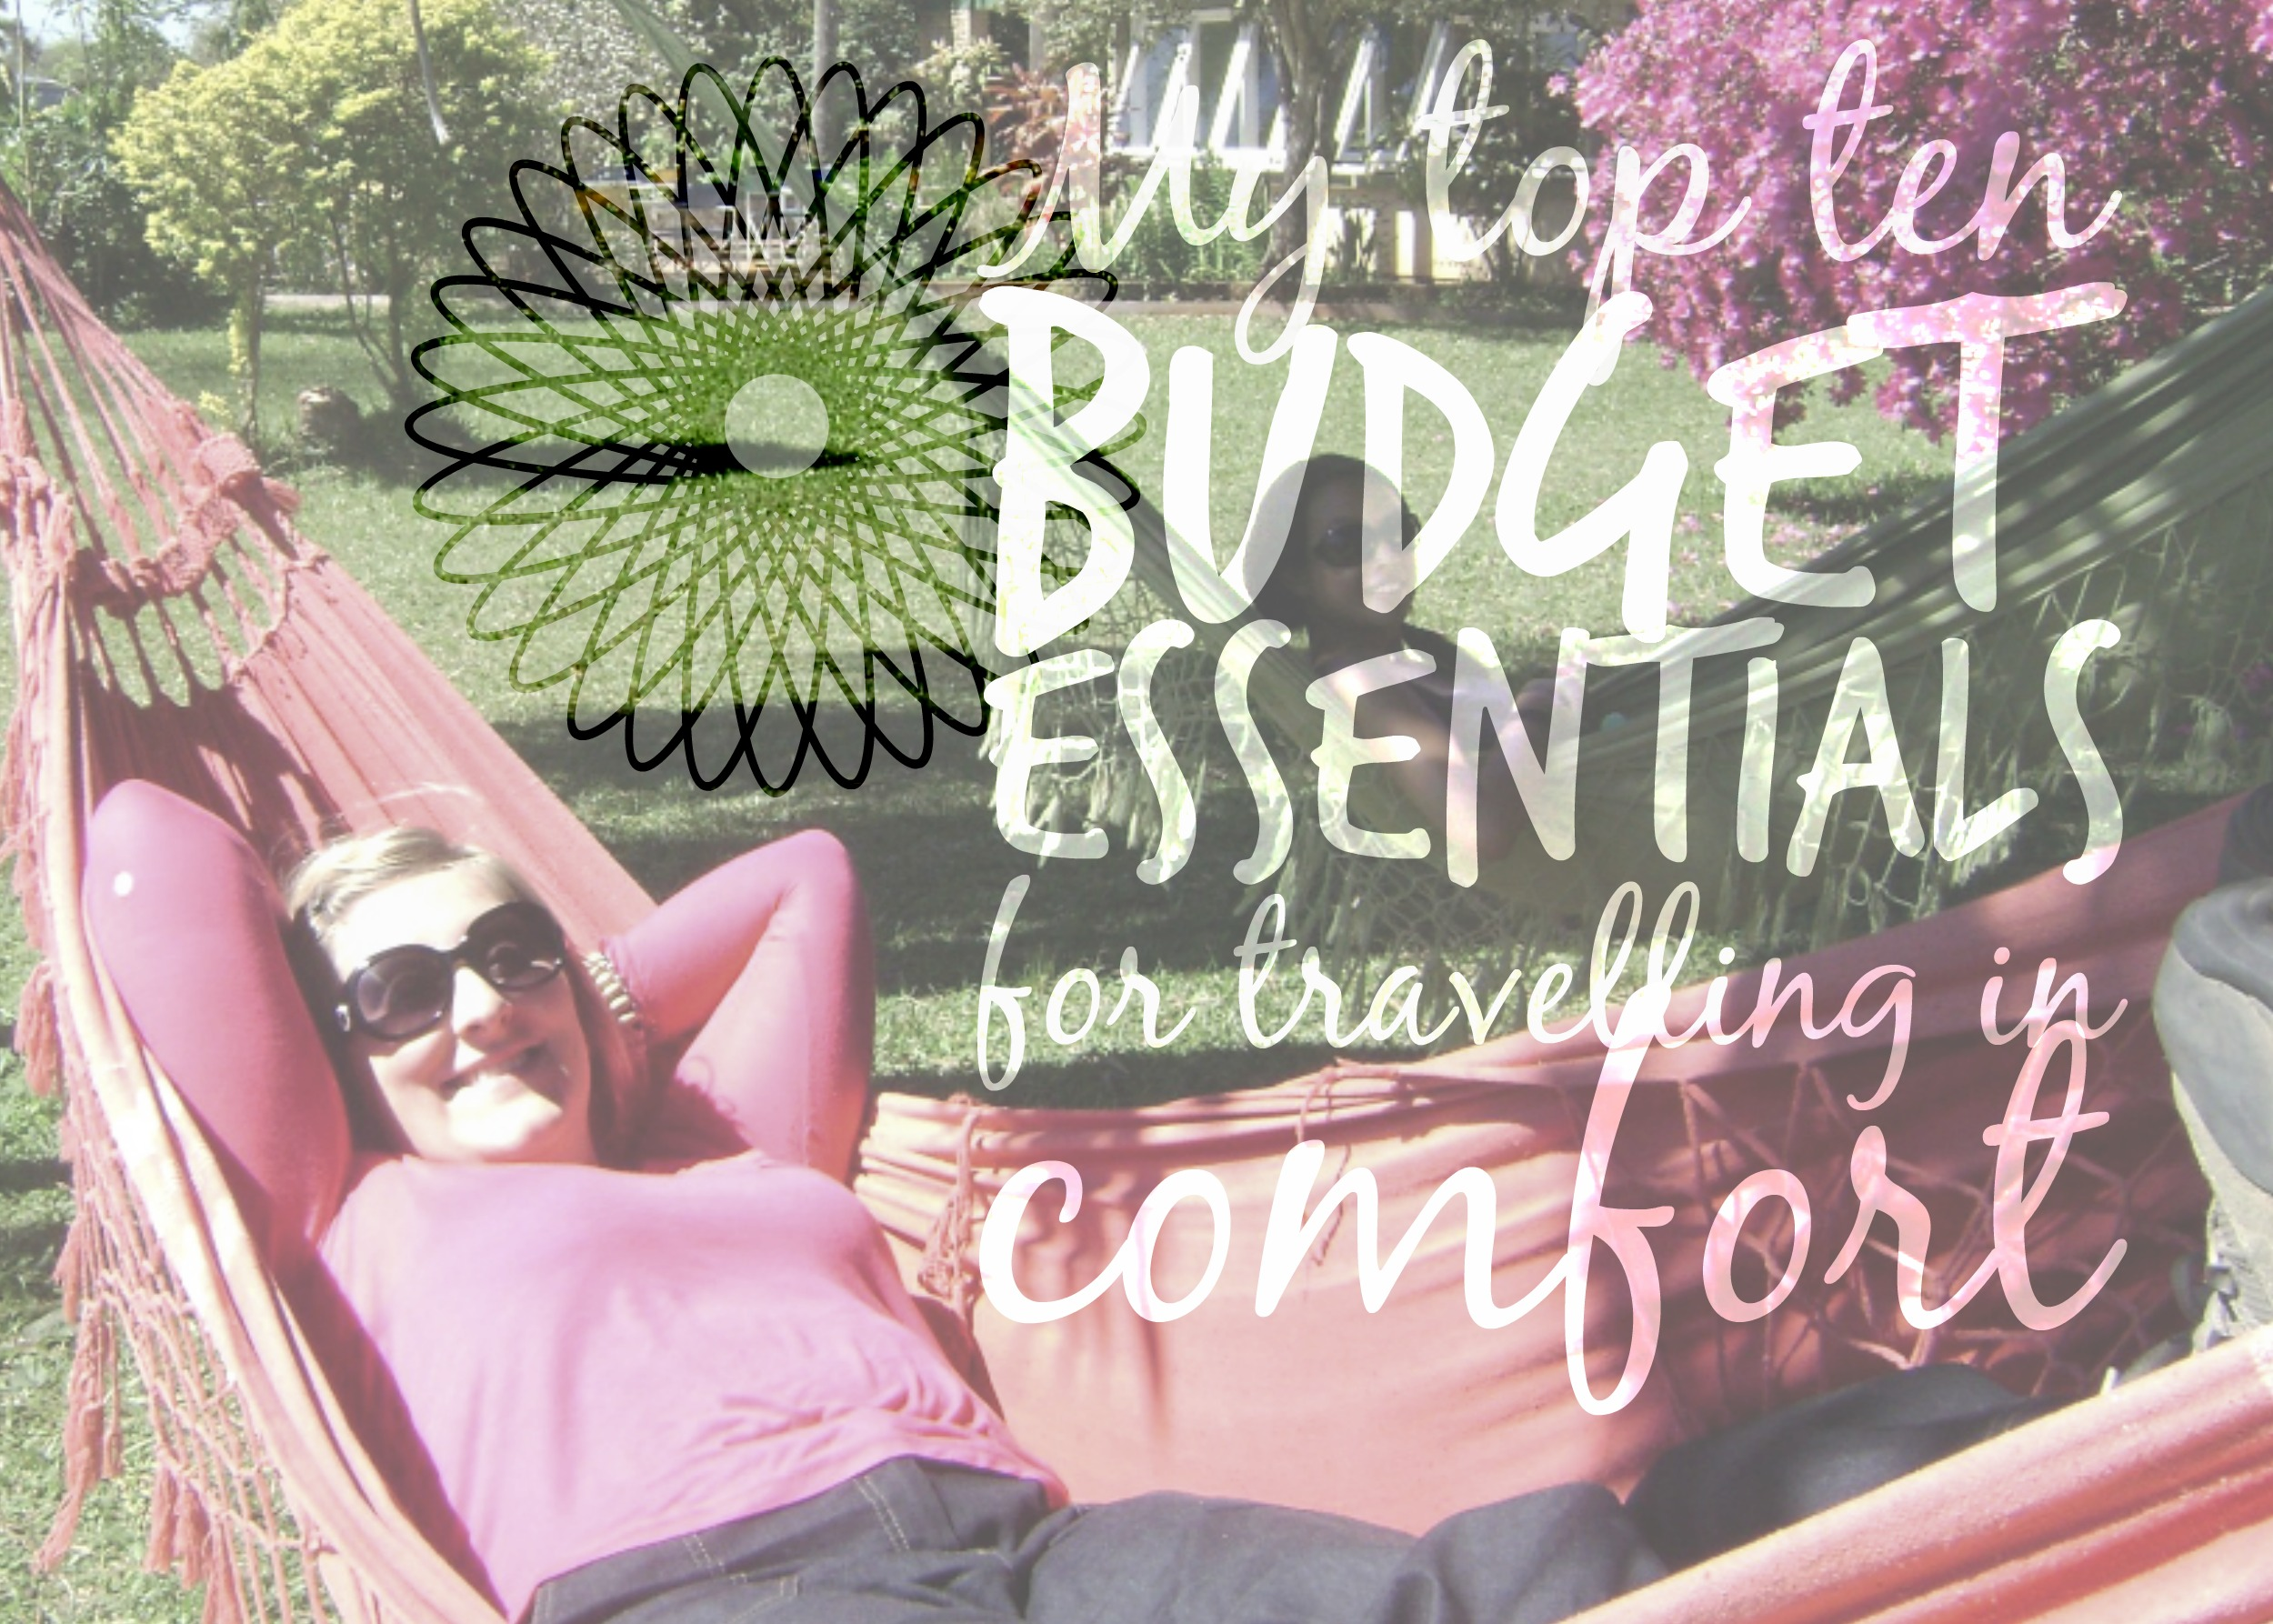 My top 10 budget essentials for travelling in comfort